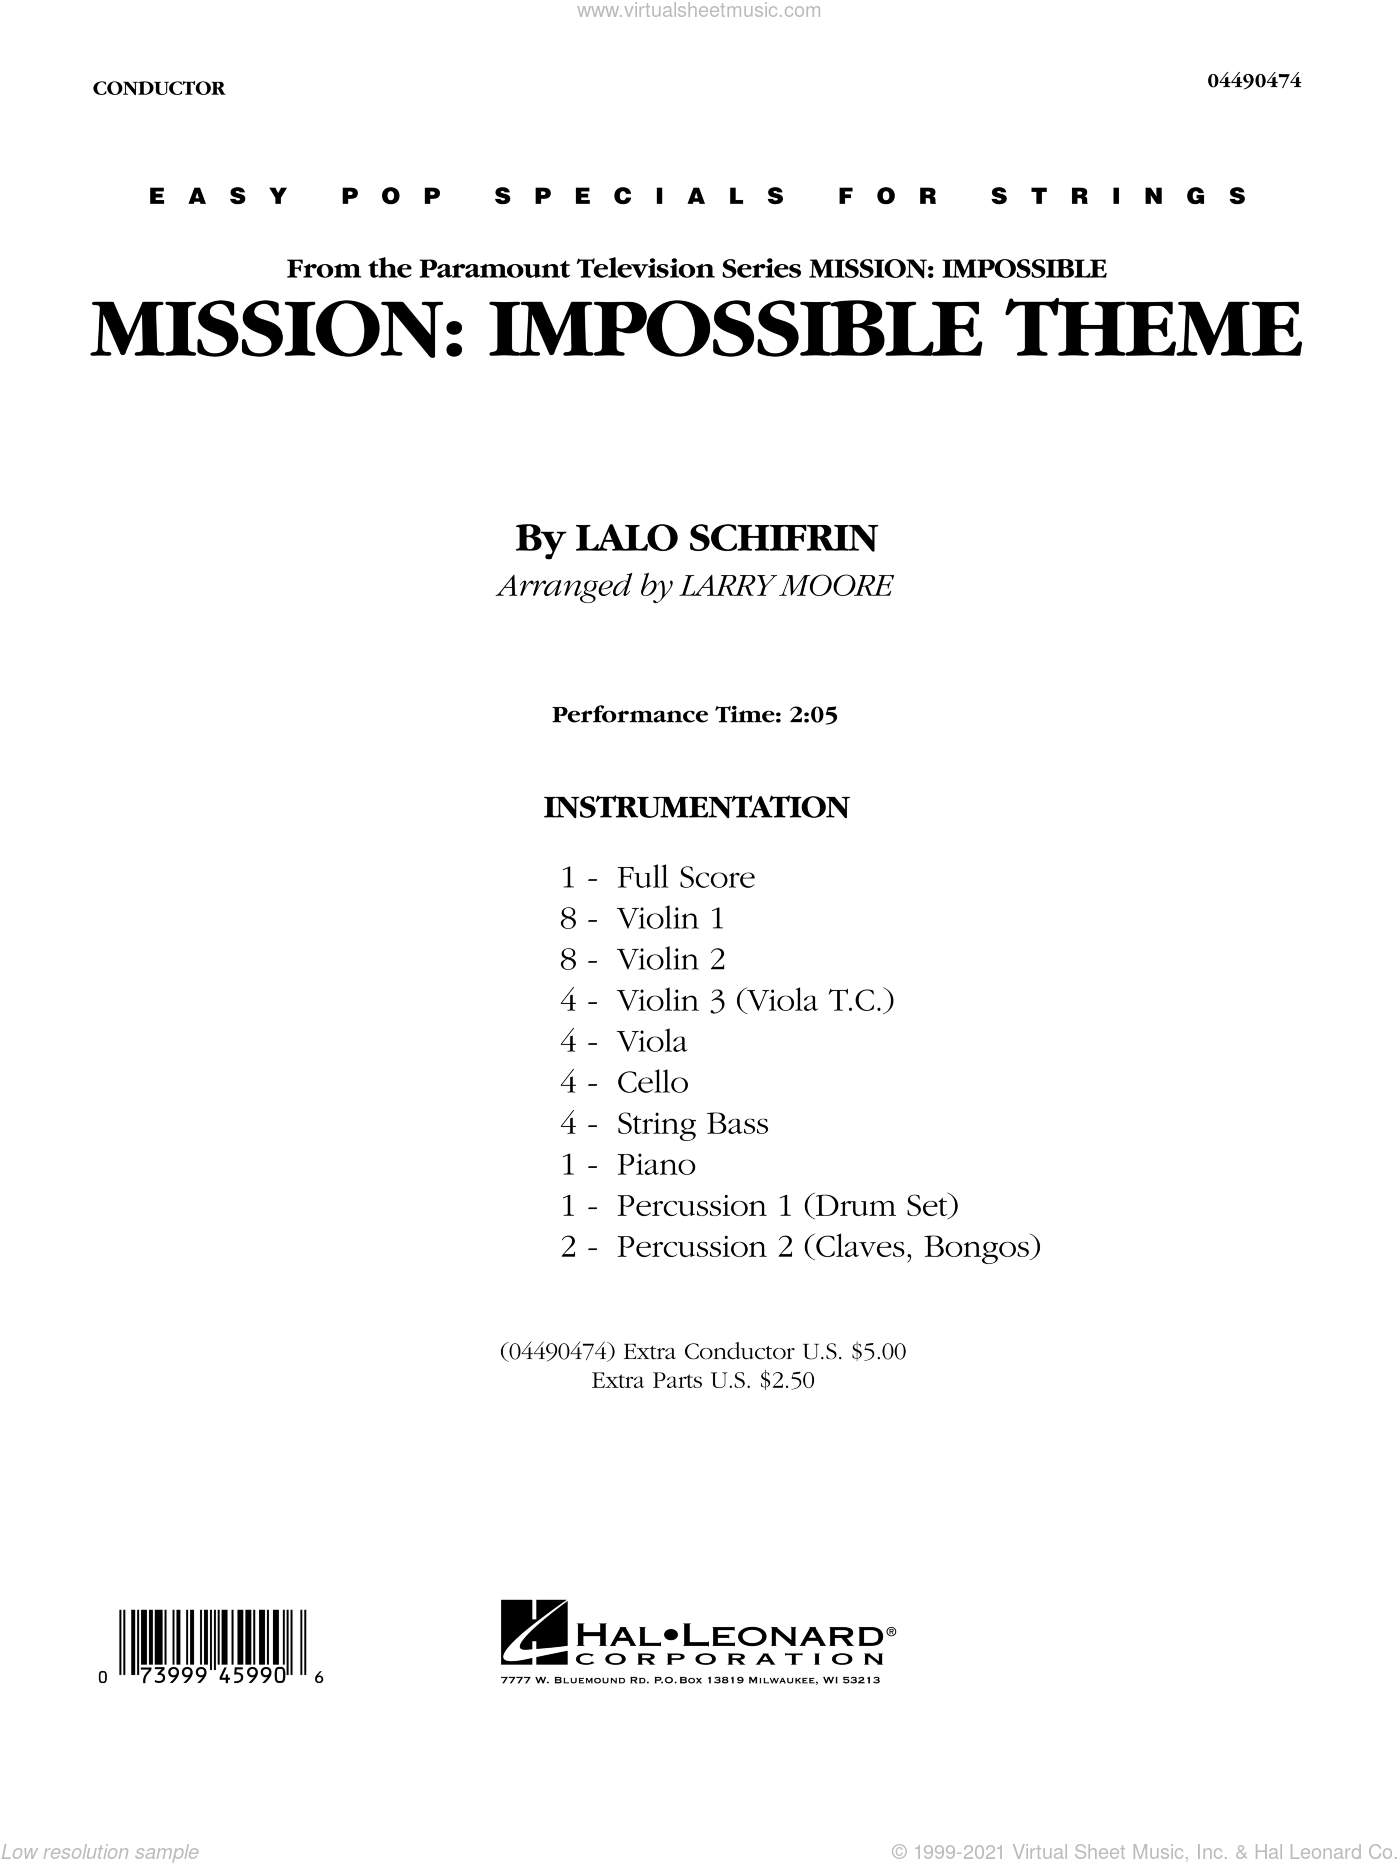 Mission: Impossible Theme sheet music for orchestra (full score) by Lalo Schifrin